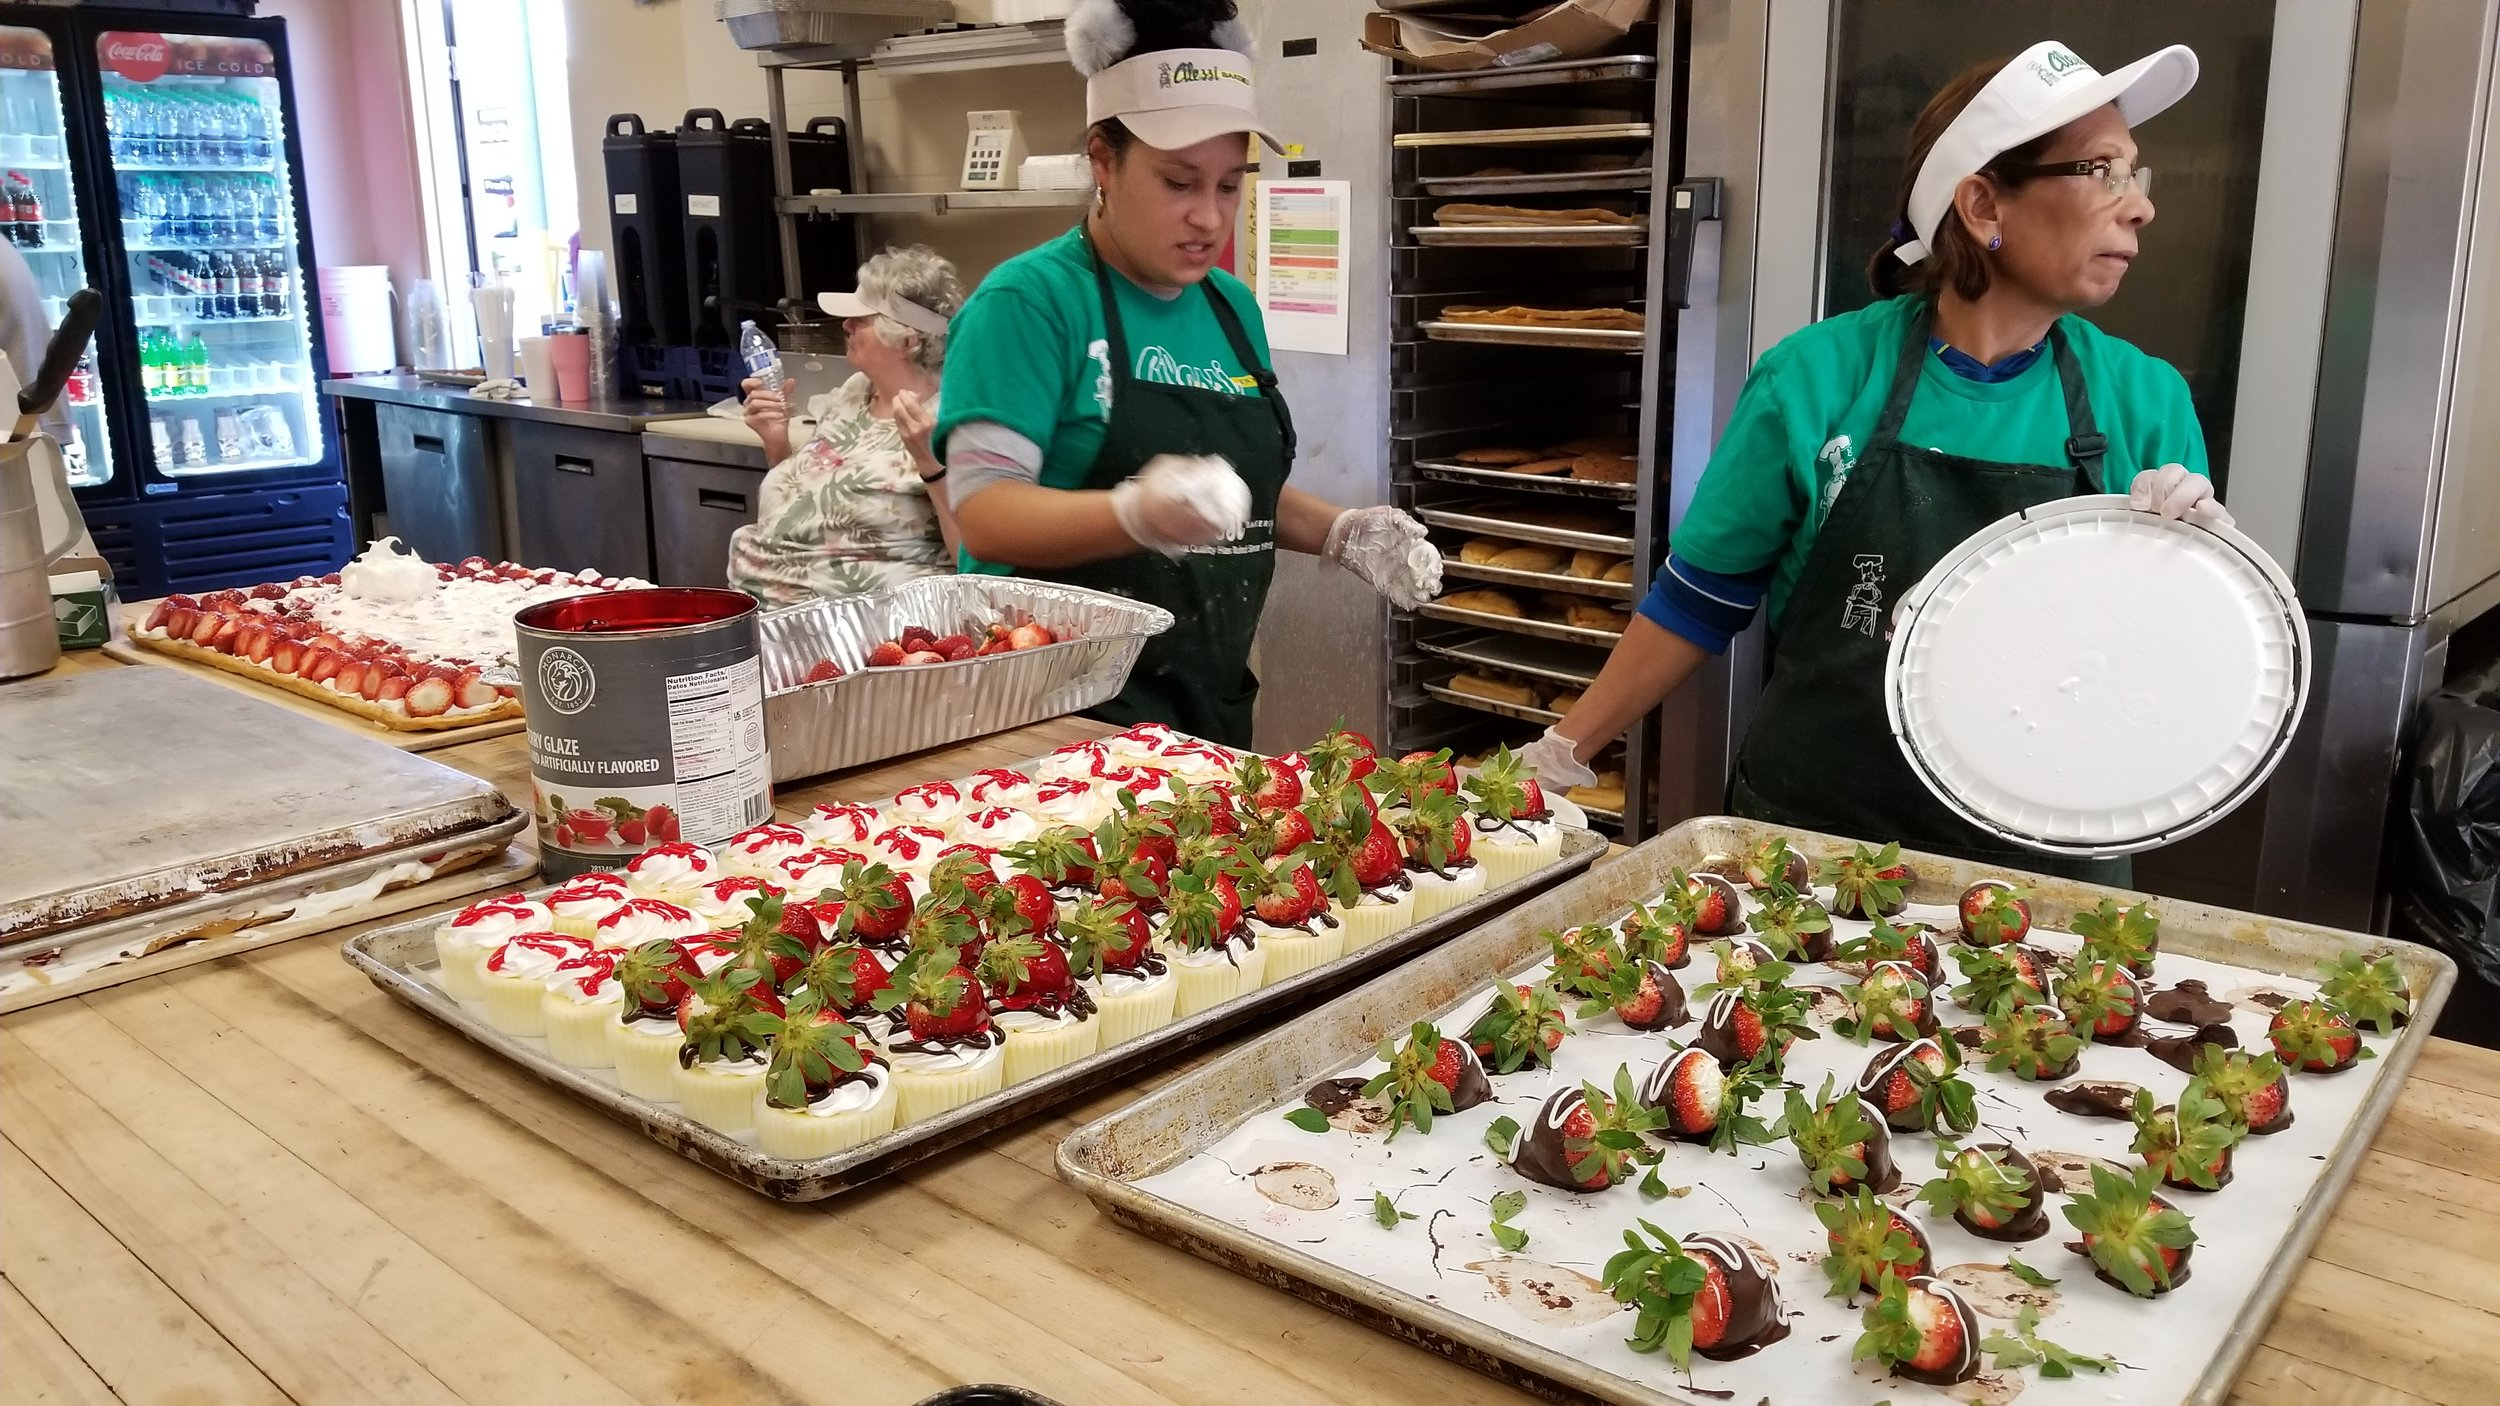 Serving up strawberry treats at the Strawberry Festival in Plant City, Florida